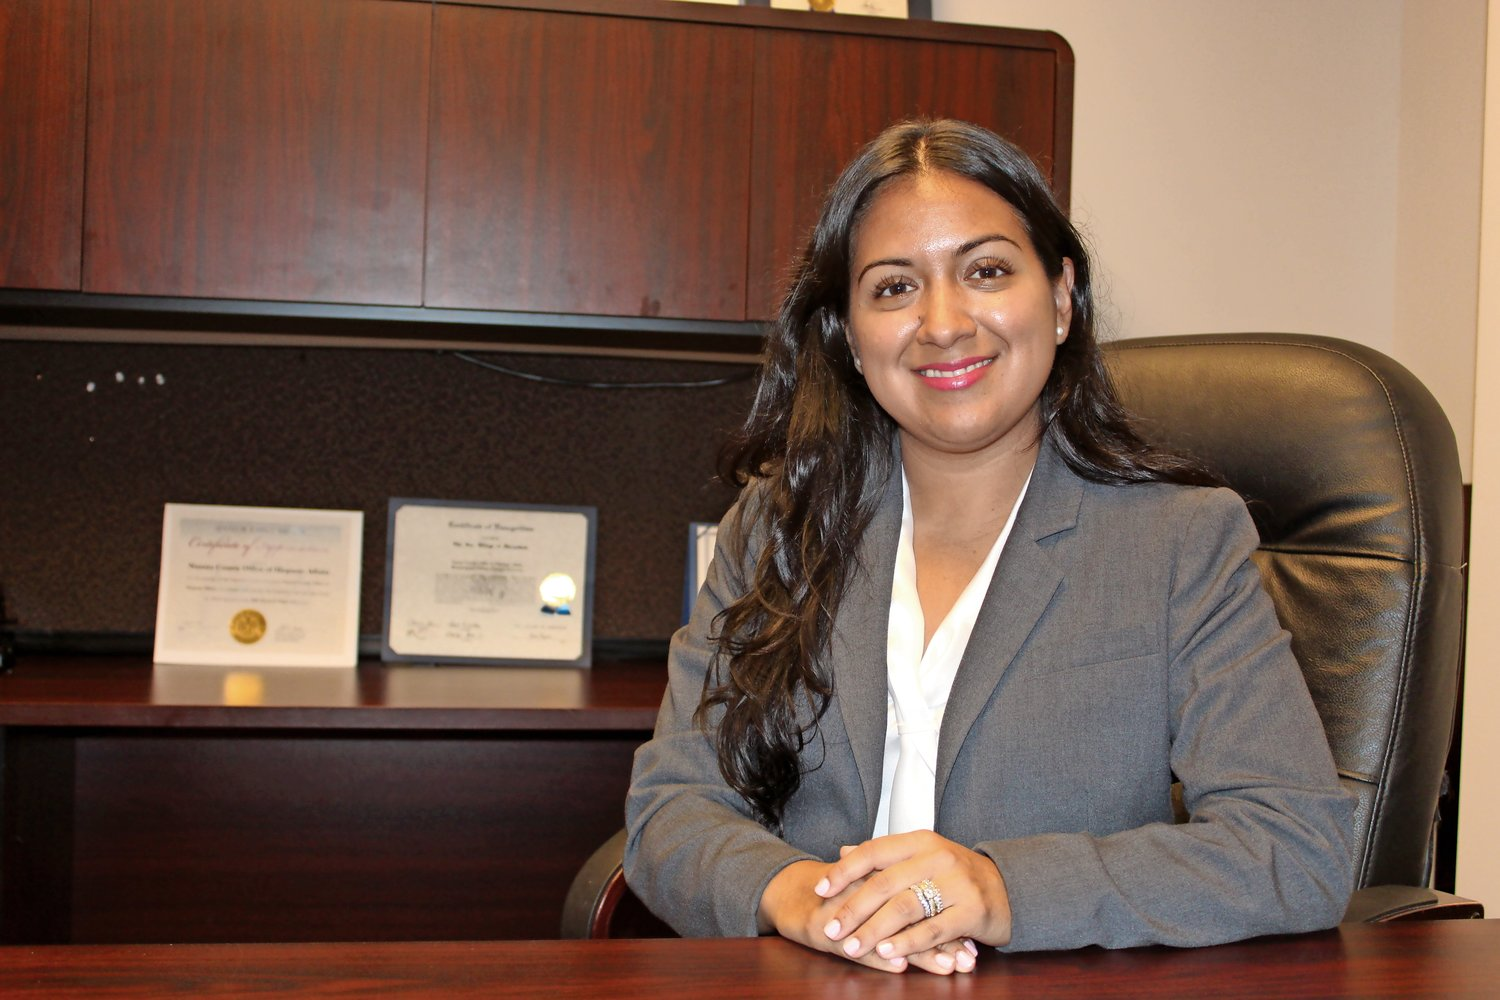 Amy Flores, of South Bellmore, was recently named the executive director of the Nassau County Office of Hispanic Affairs.